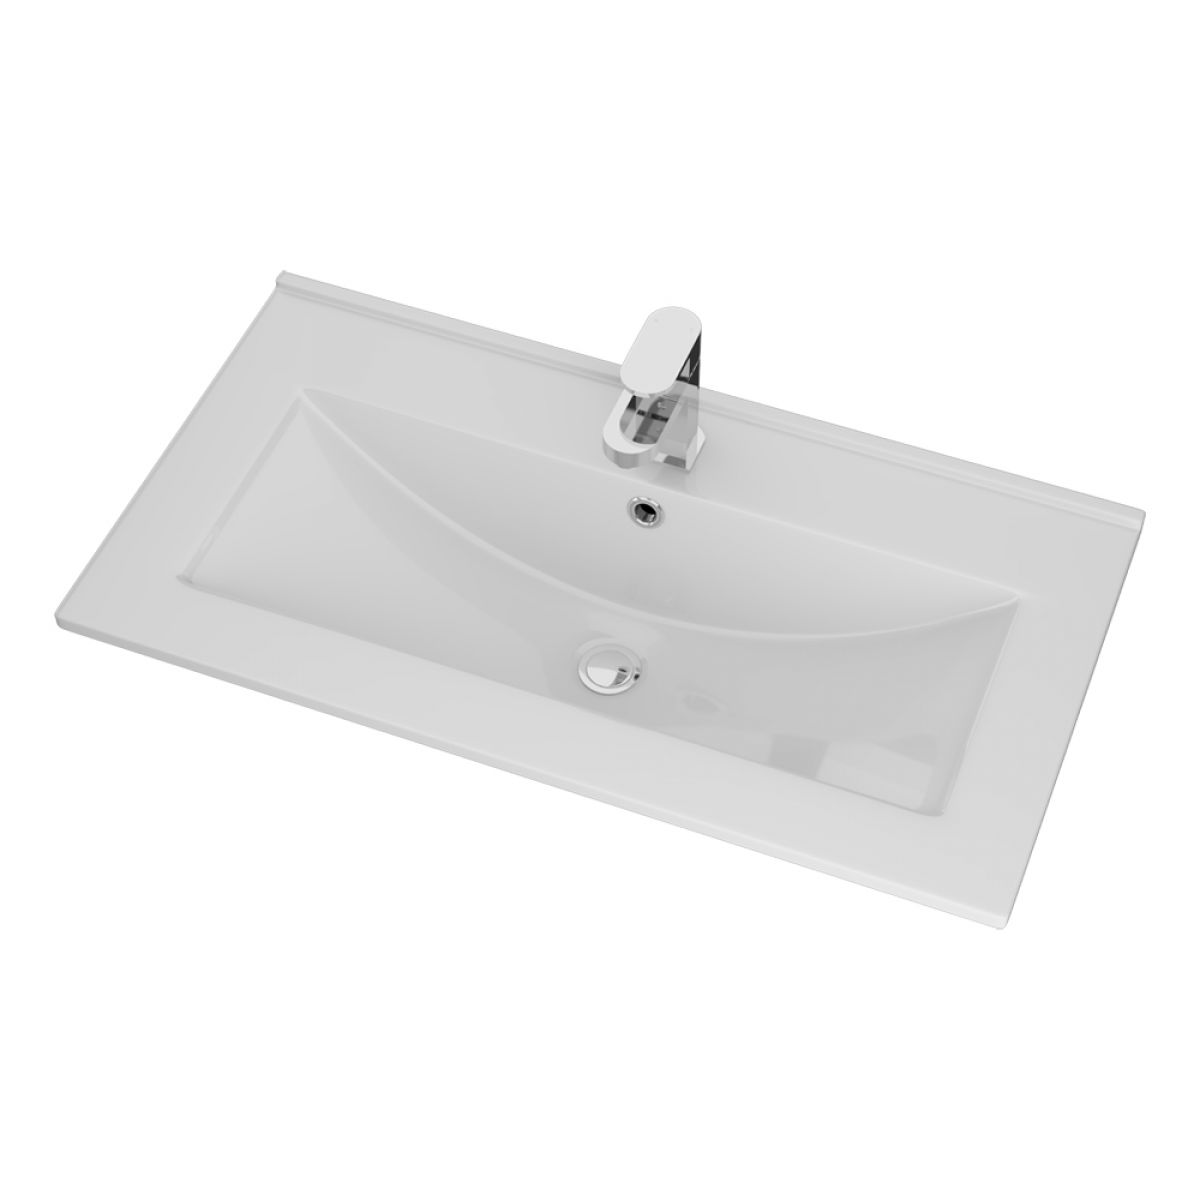 Cassellie Idon Ceramic Thin Edge Basin 800mm